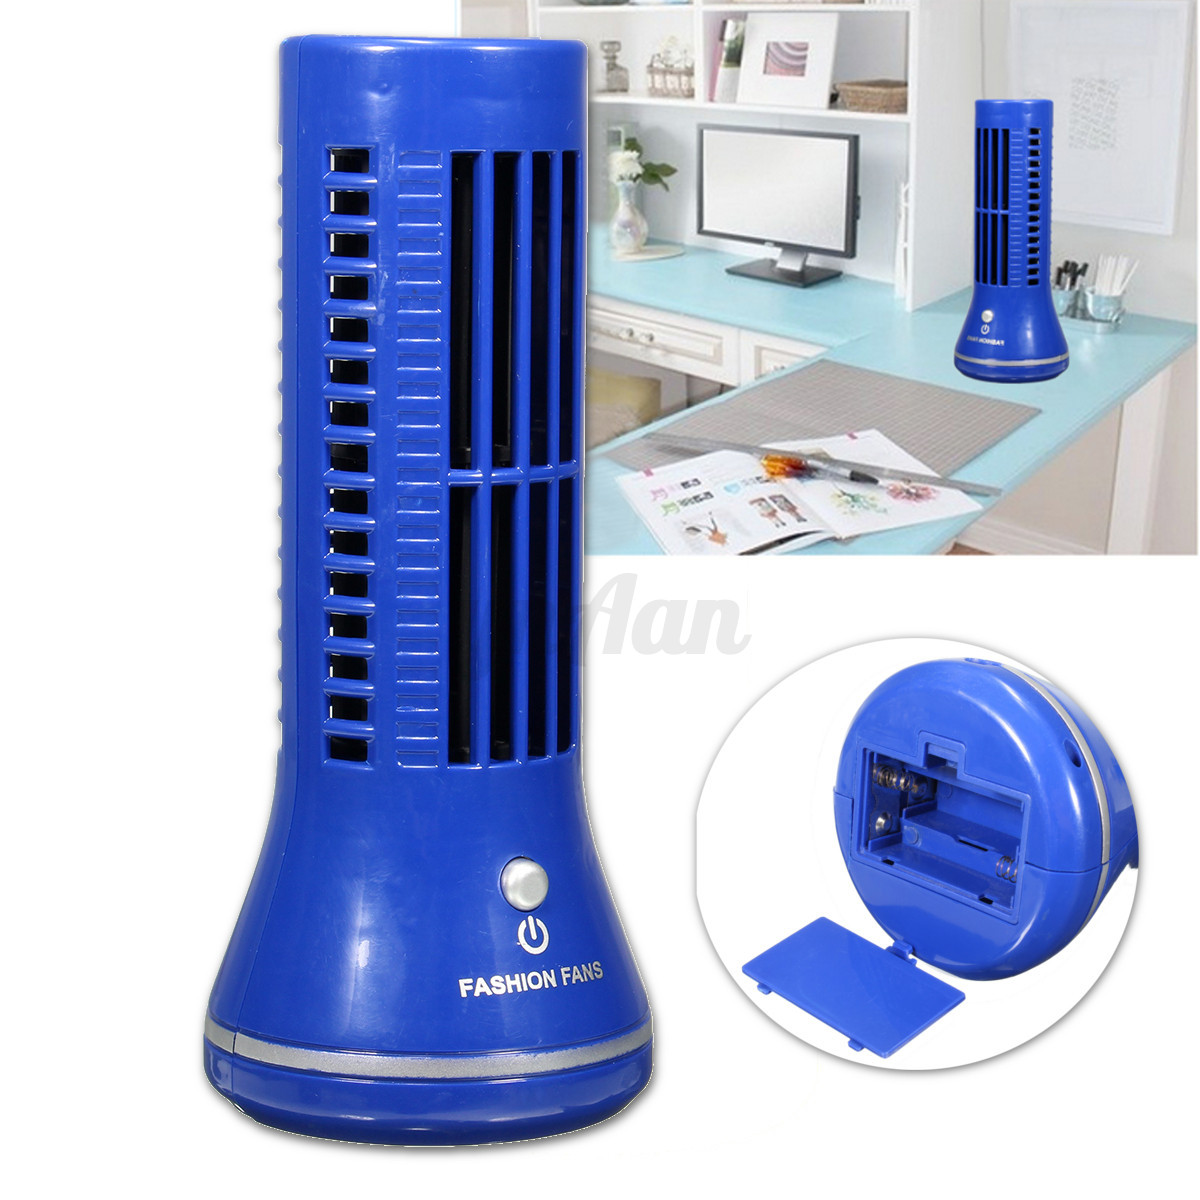 Mini USB Tower Fan Cooling Bladeless Laptop Air Conditioner eBay #2041AB